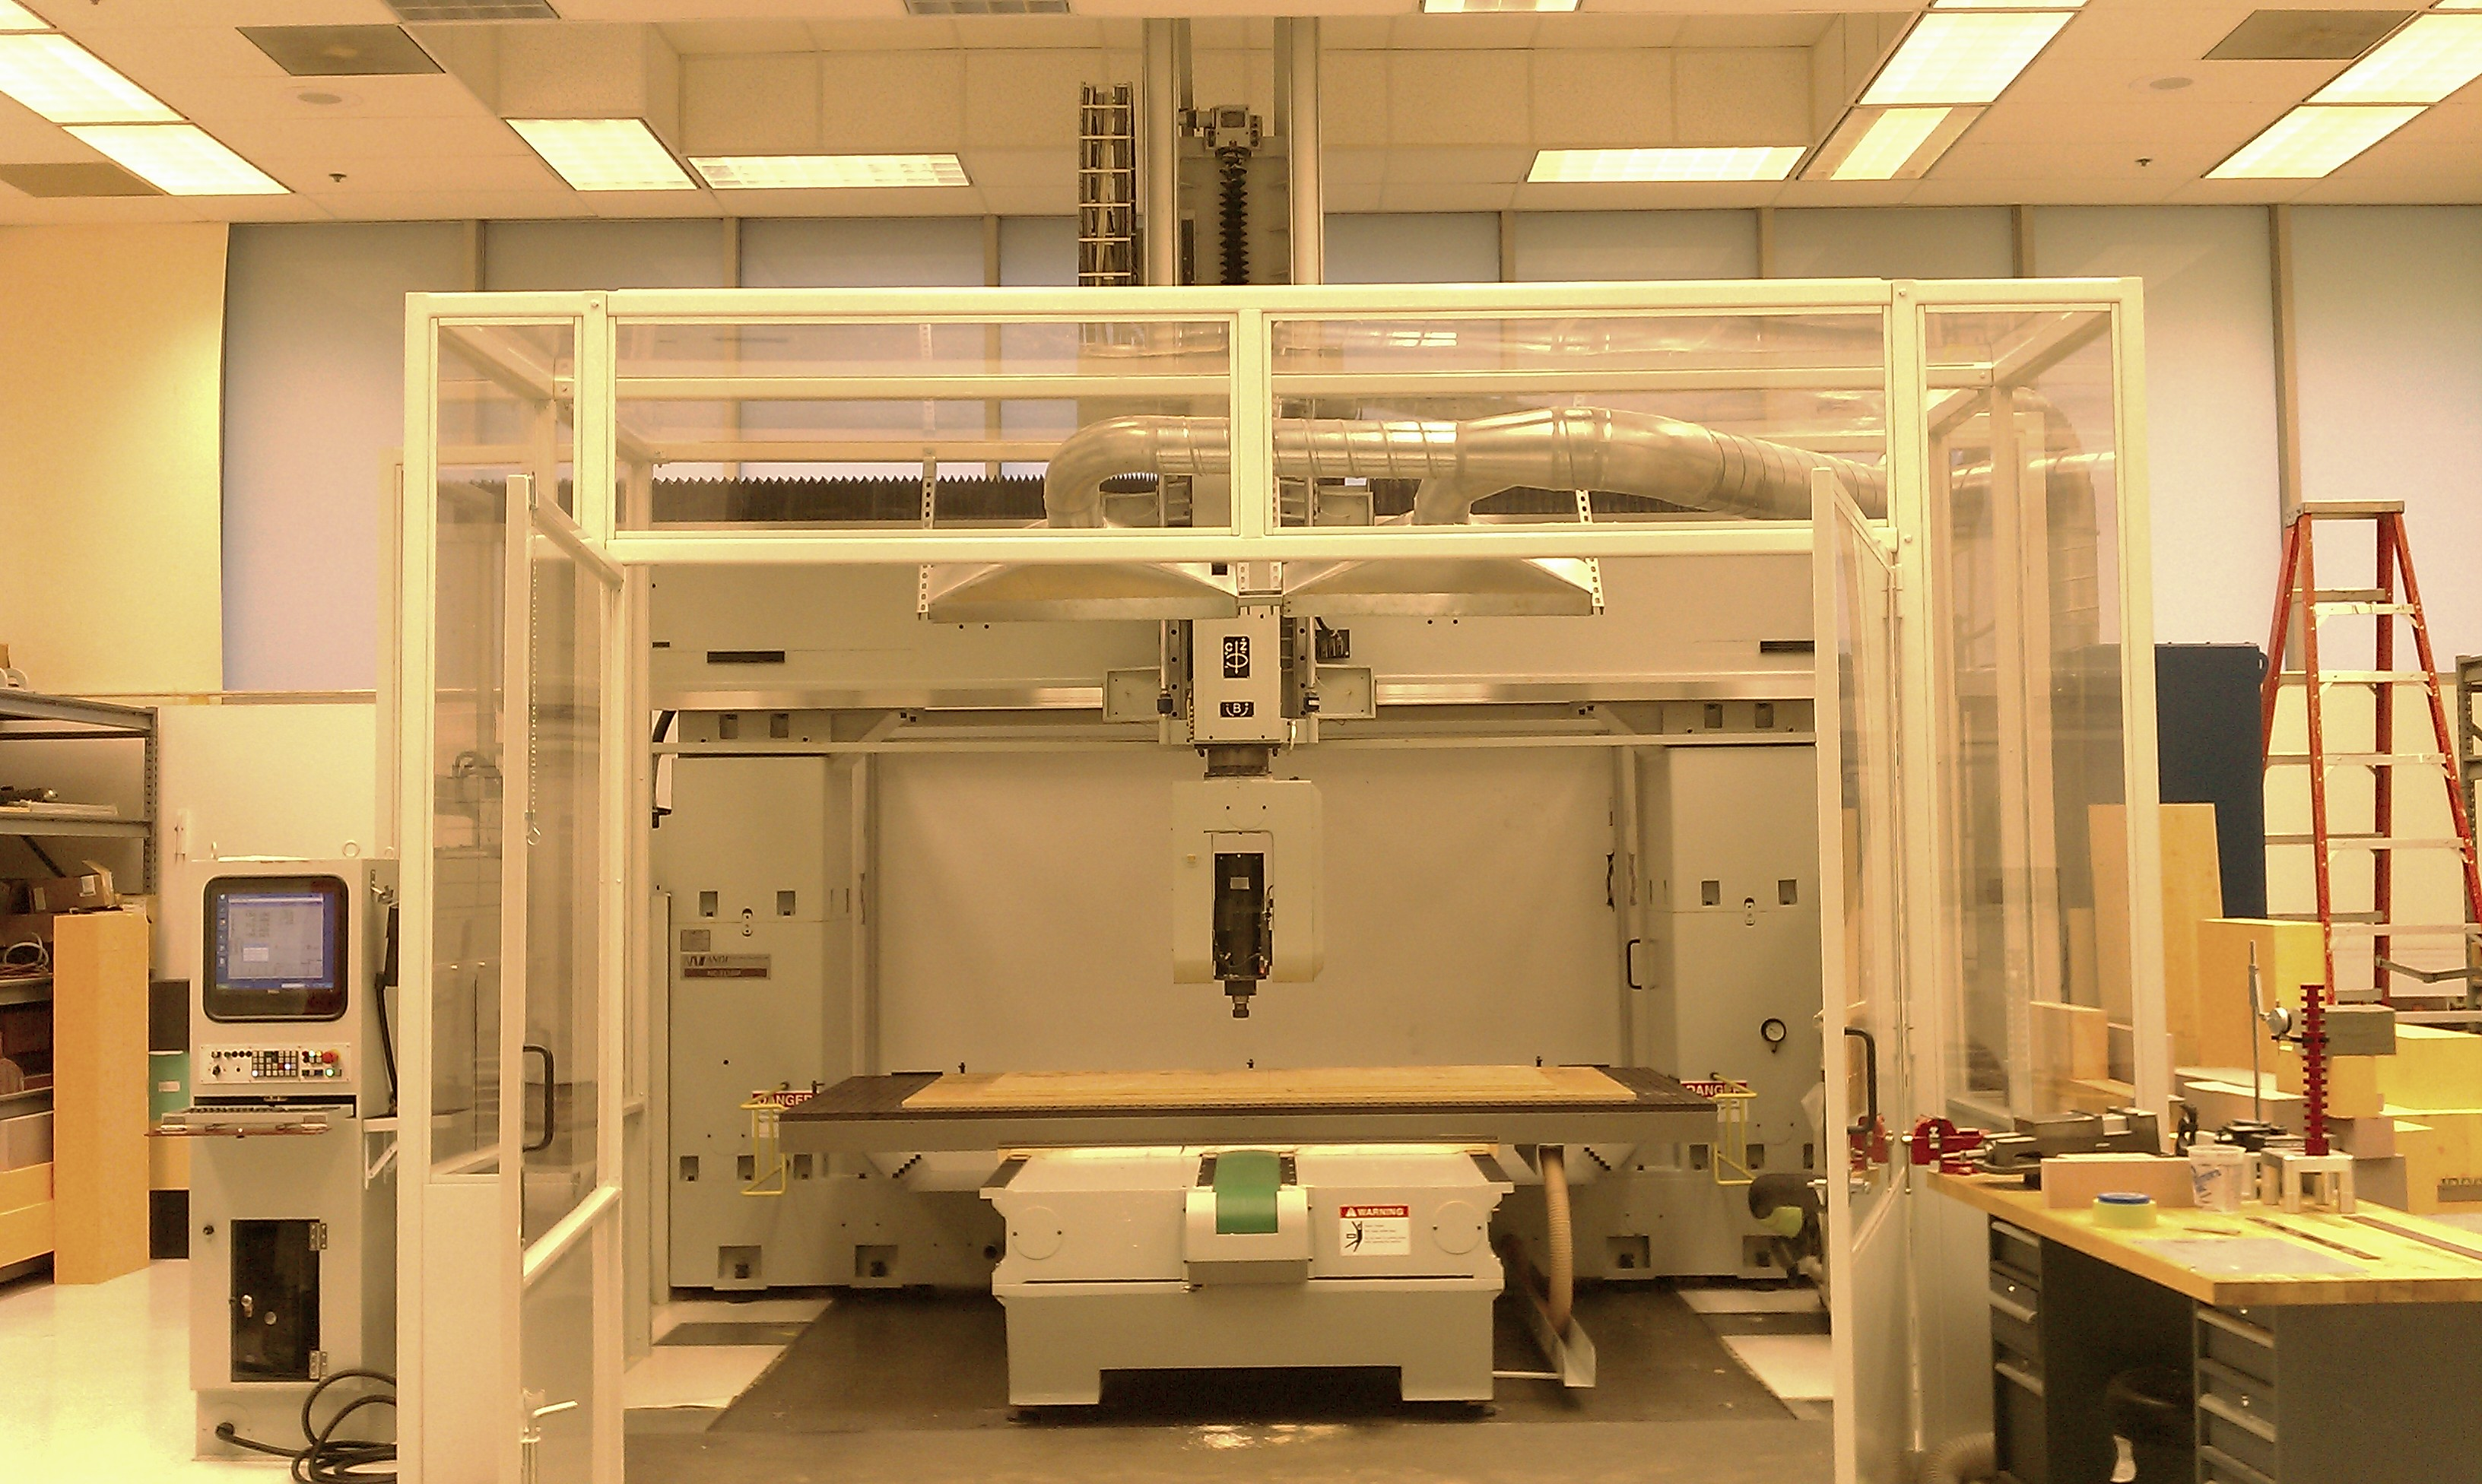 "Anderson Maxxis 3116 NC 5-Axis CNC Router 2011 Fanuc 31iB5 CNC Control 63"" x 122"" Table 9-HP Vacuum System"